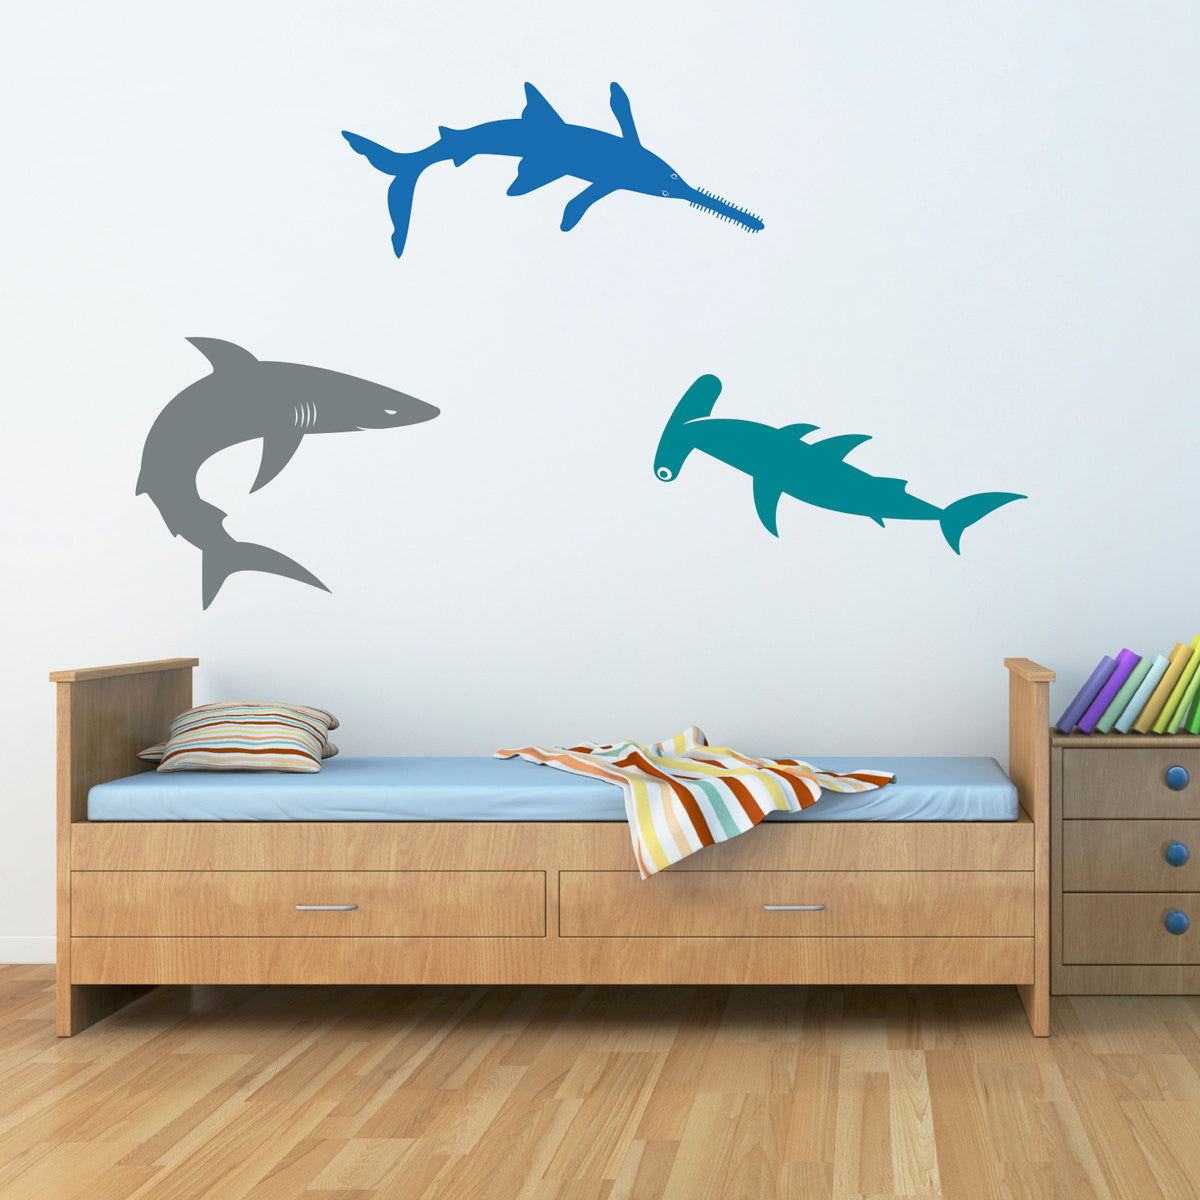 Sharks wall decal set bull shark hammerhead sawshark boy sharks wall decal set bull shark hammerhead sawshark boy bedroom wall stickers extra large set of 3 amipublicfo Image collections